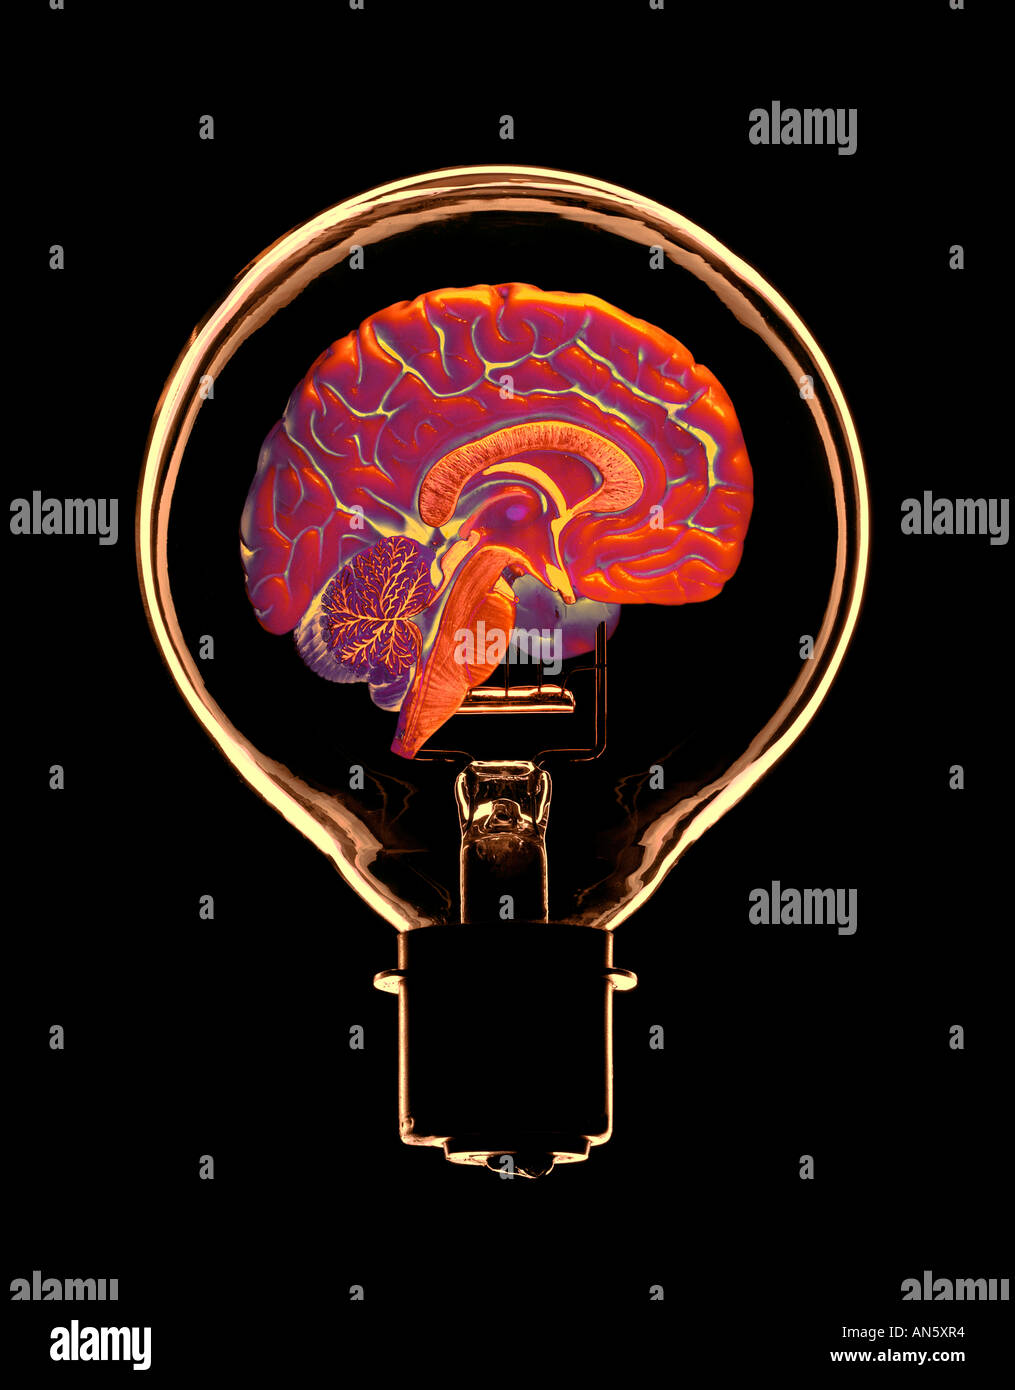 FALSE COLOUR IMAGE OF GLASS ELECTRIC LIGHT BULB CONTAINING HALF OF HUMAN BRAIN - Stock Image